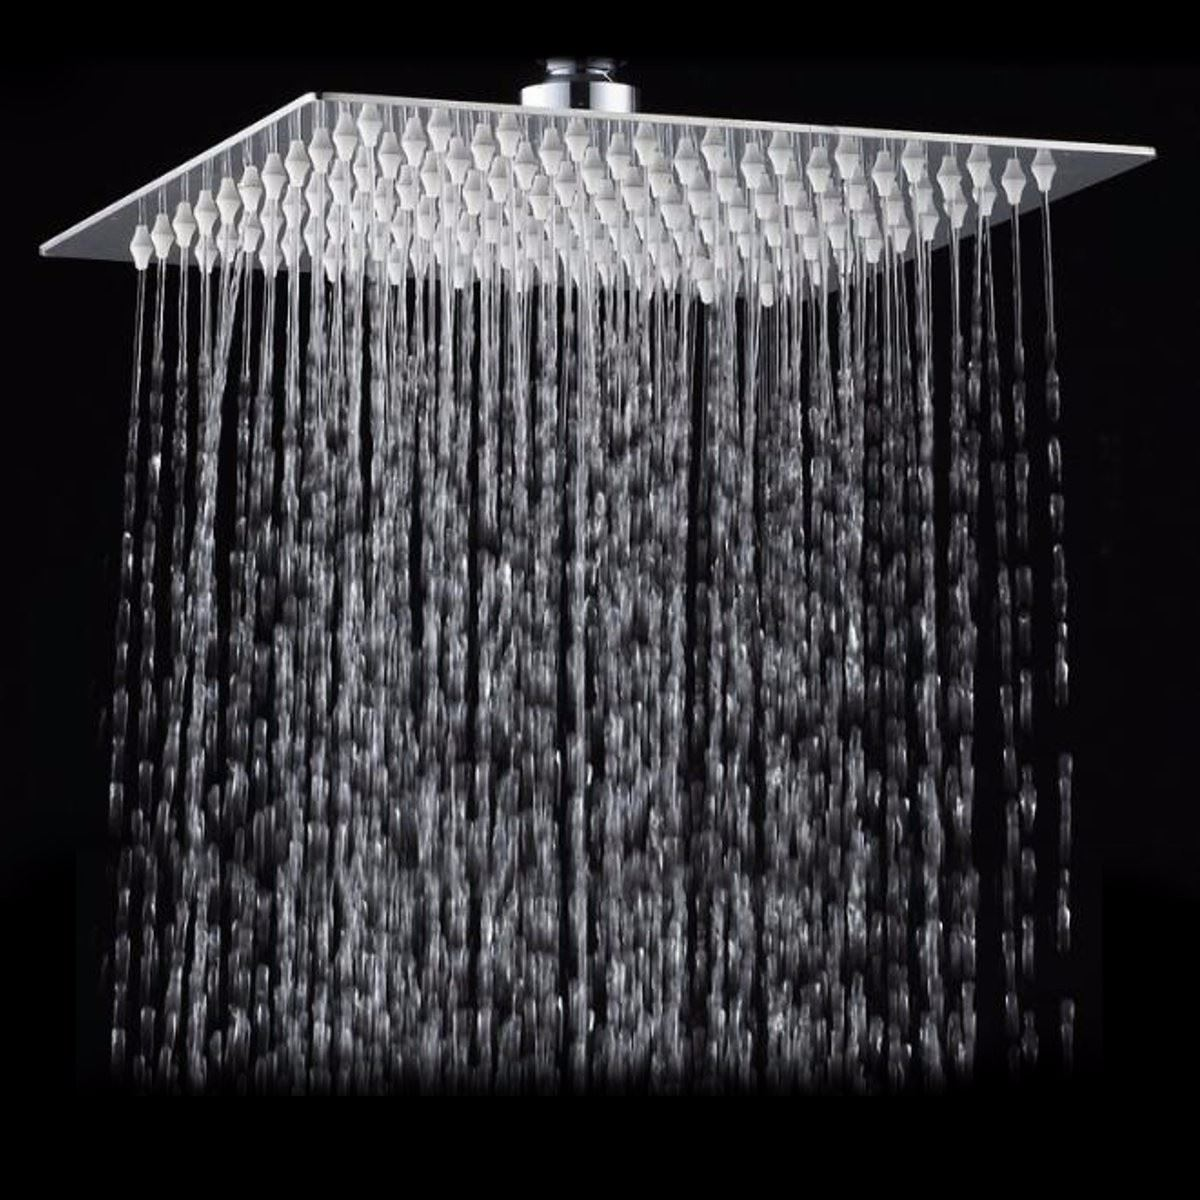 Square Bathroom Stainless Steel Rain Shower Head Rainfall 12 Inch Bath Shower Chrome Top Sprayer High Pressure Rainfall Shower